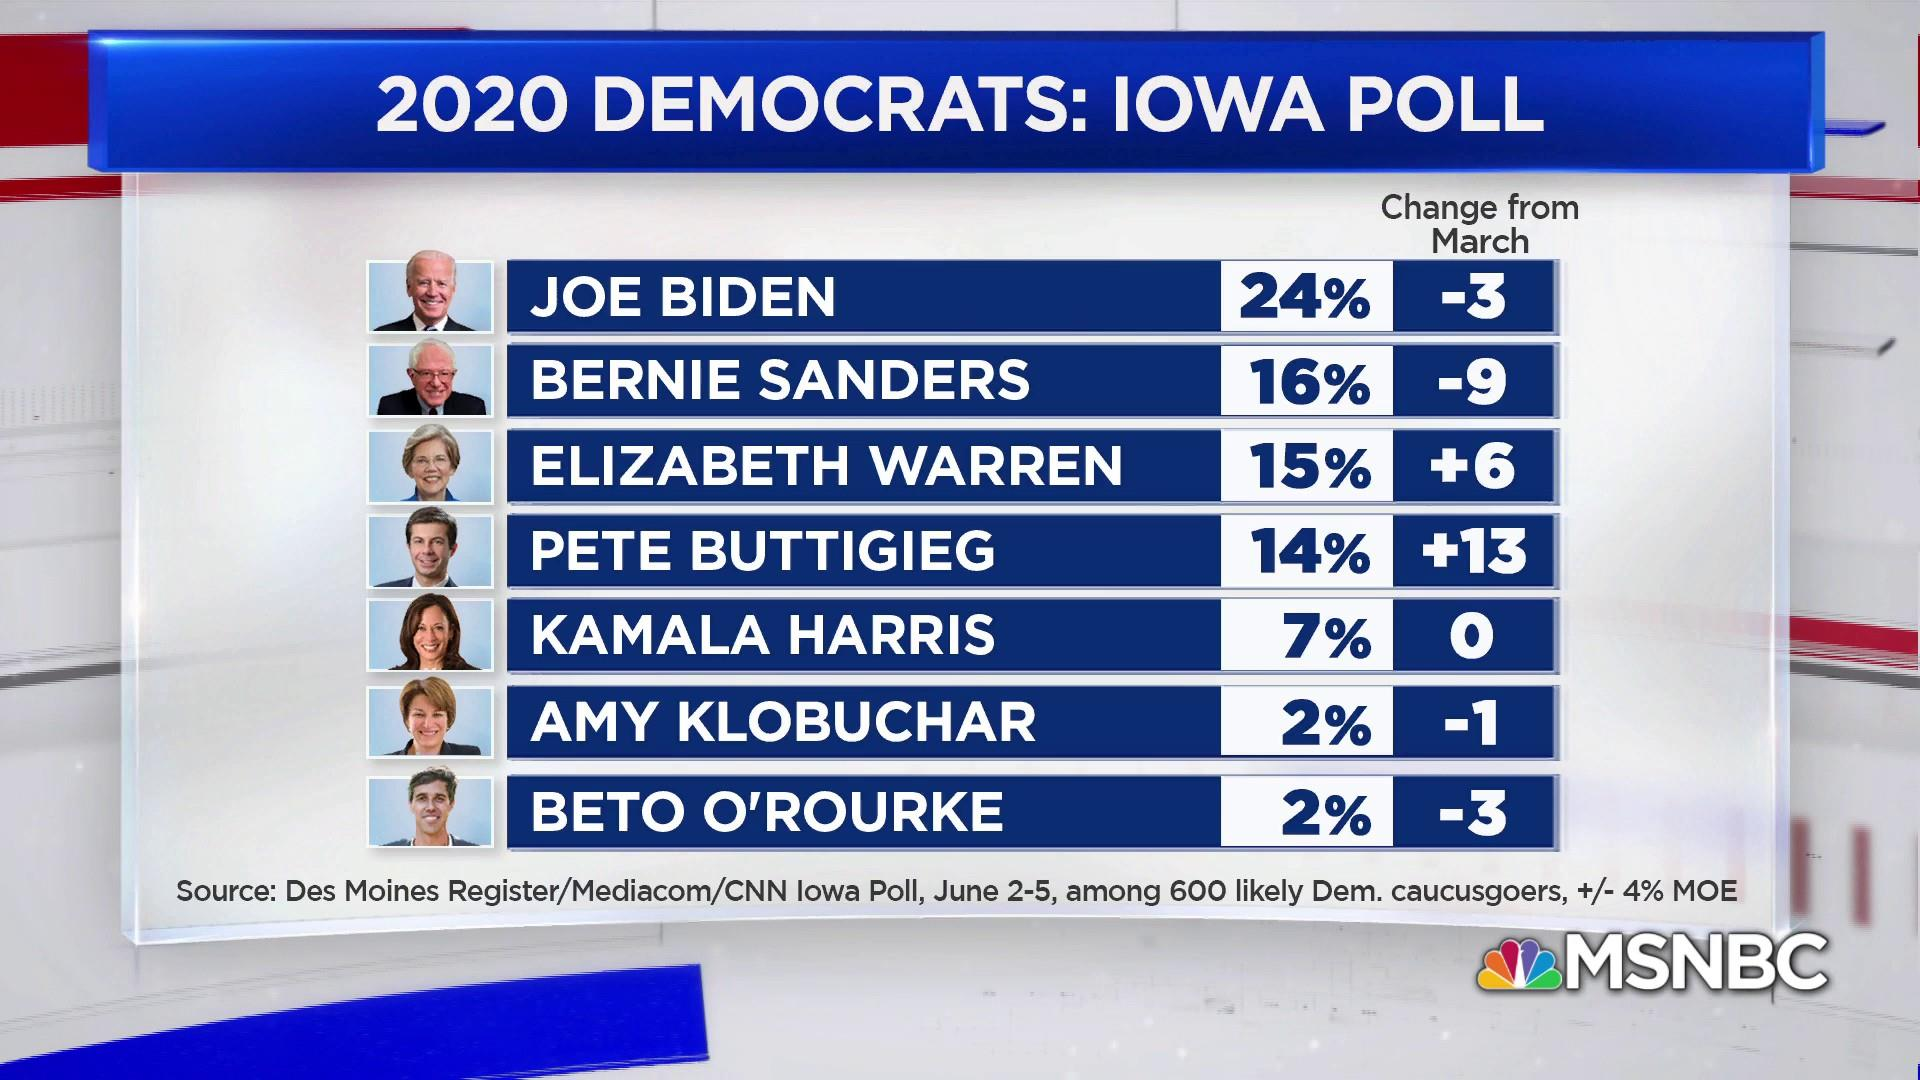 New Iowa poll: Biden lead shrinks as Warren, Buttigieg climb